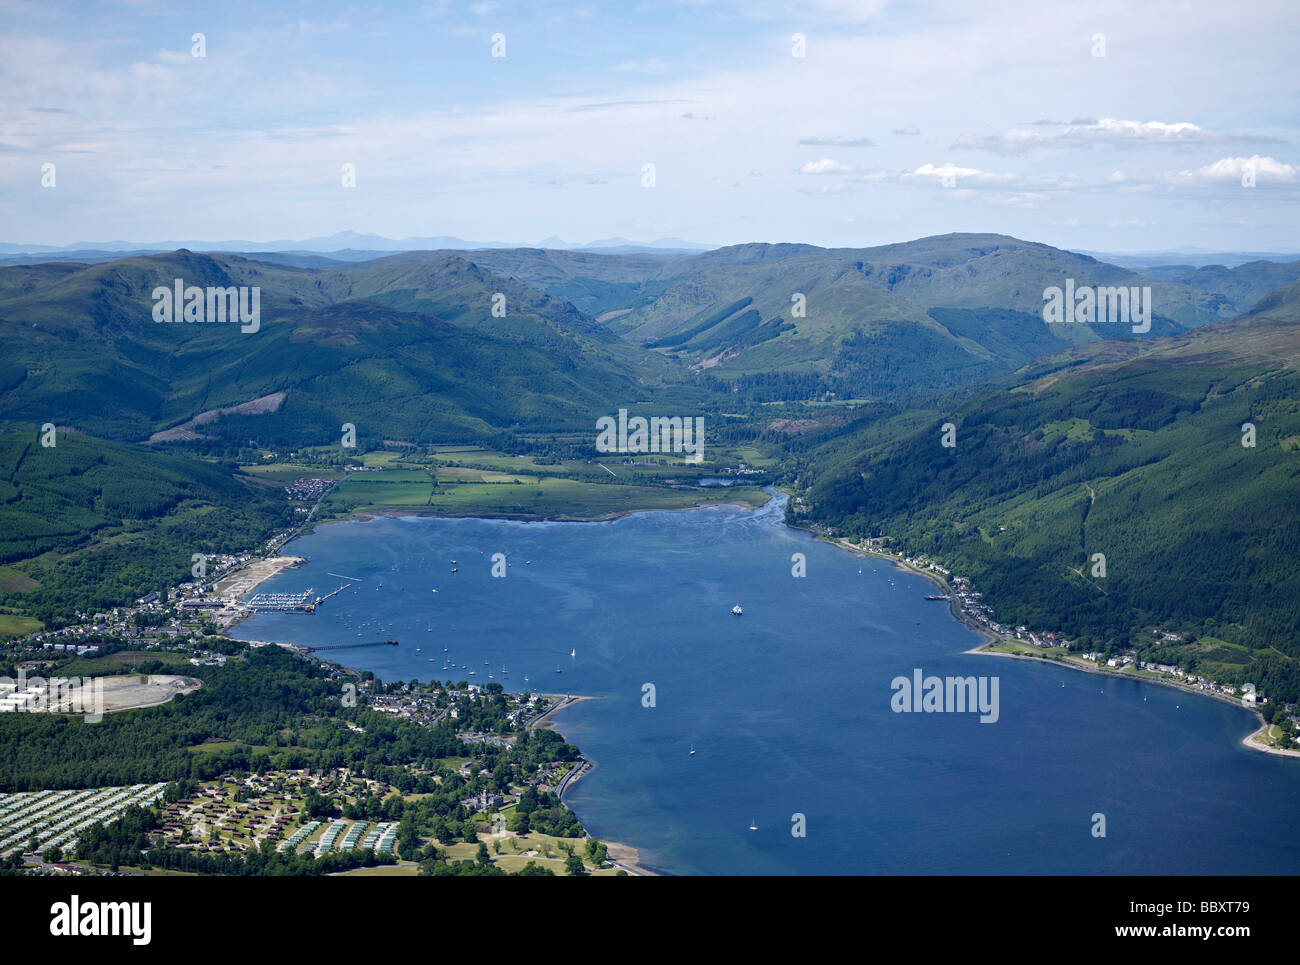 Holy Loch Scotland Map.Sandbank And Holy Loch Western Scotland With The Argyll Forest And